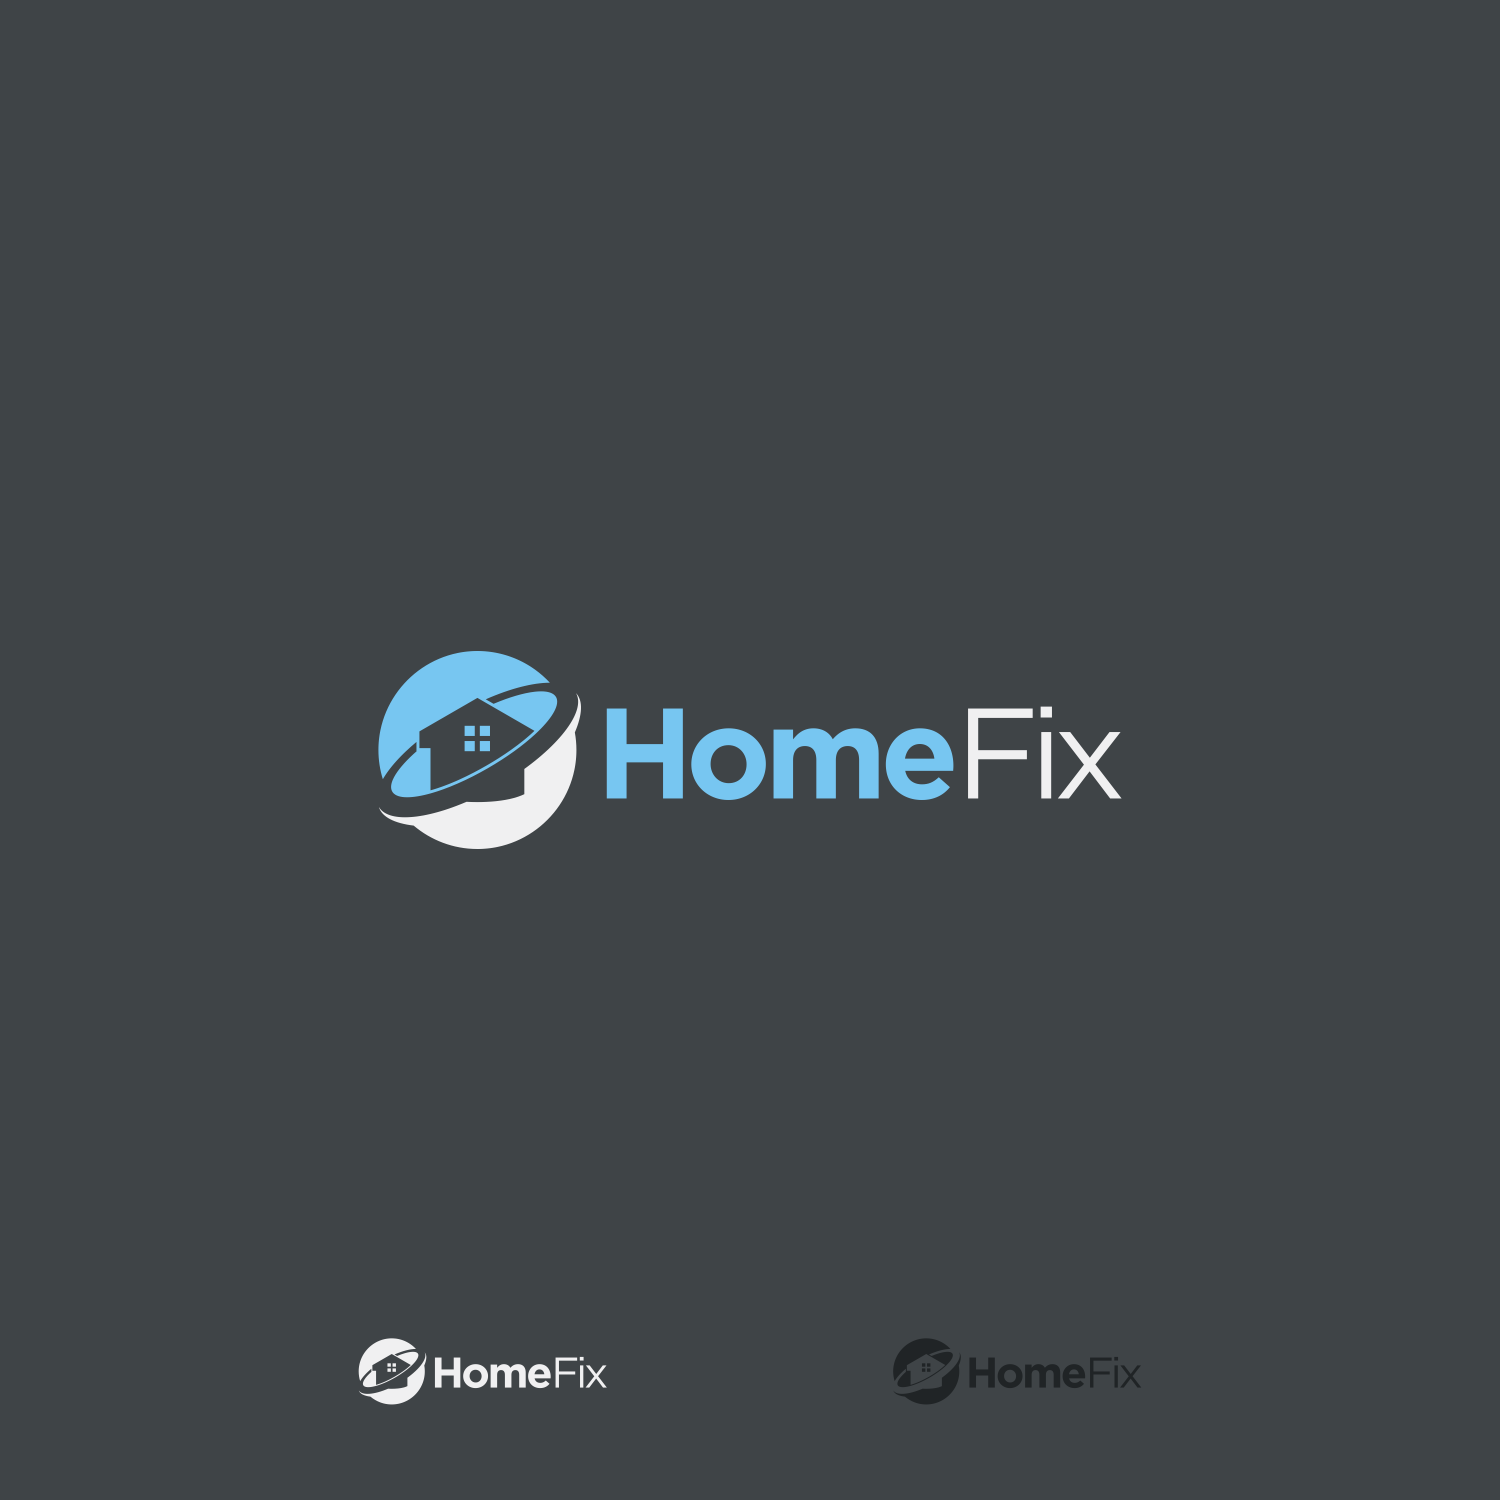 Professional Modern Logo Design For Homefix By Novita007